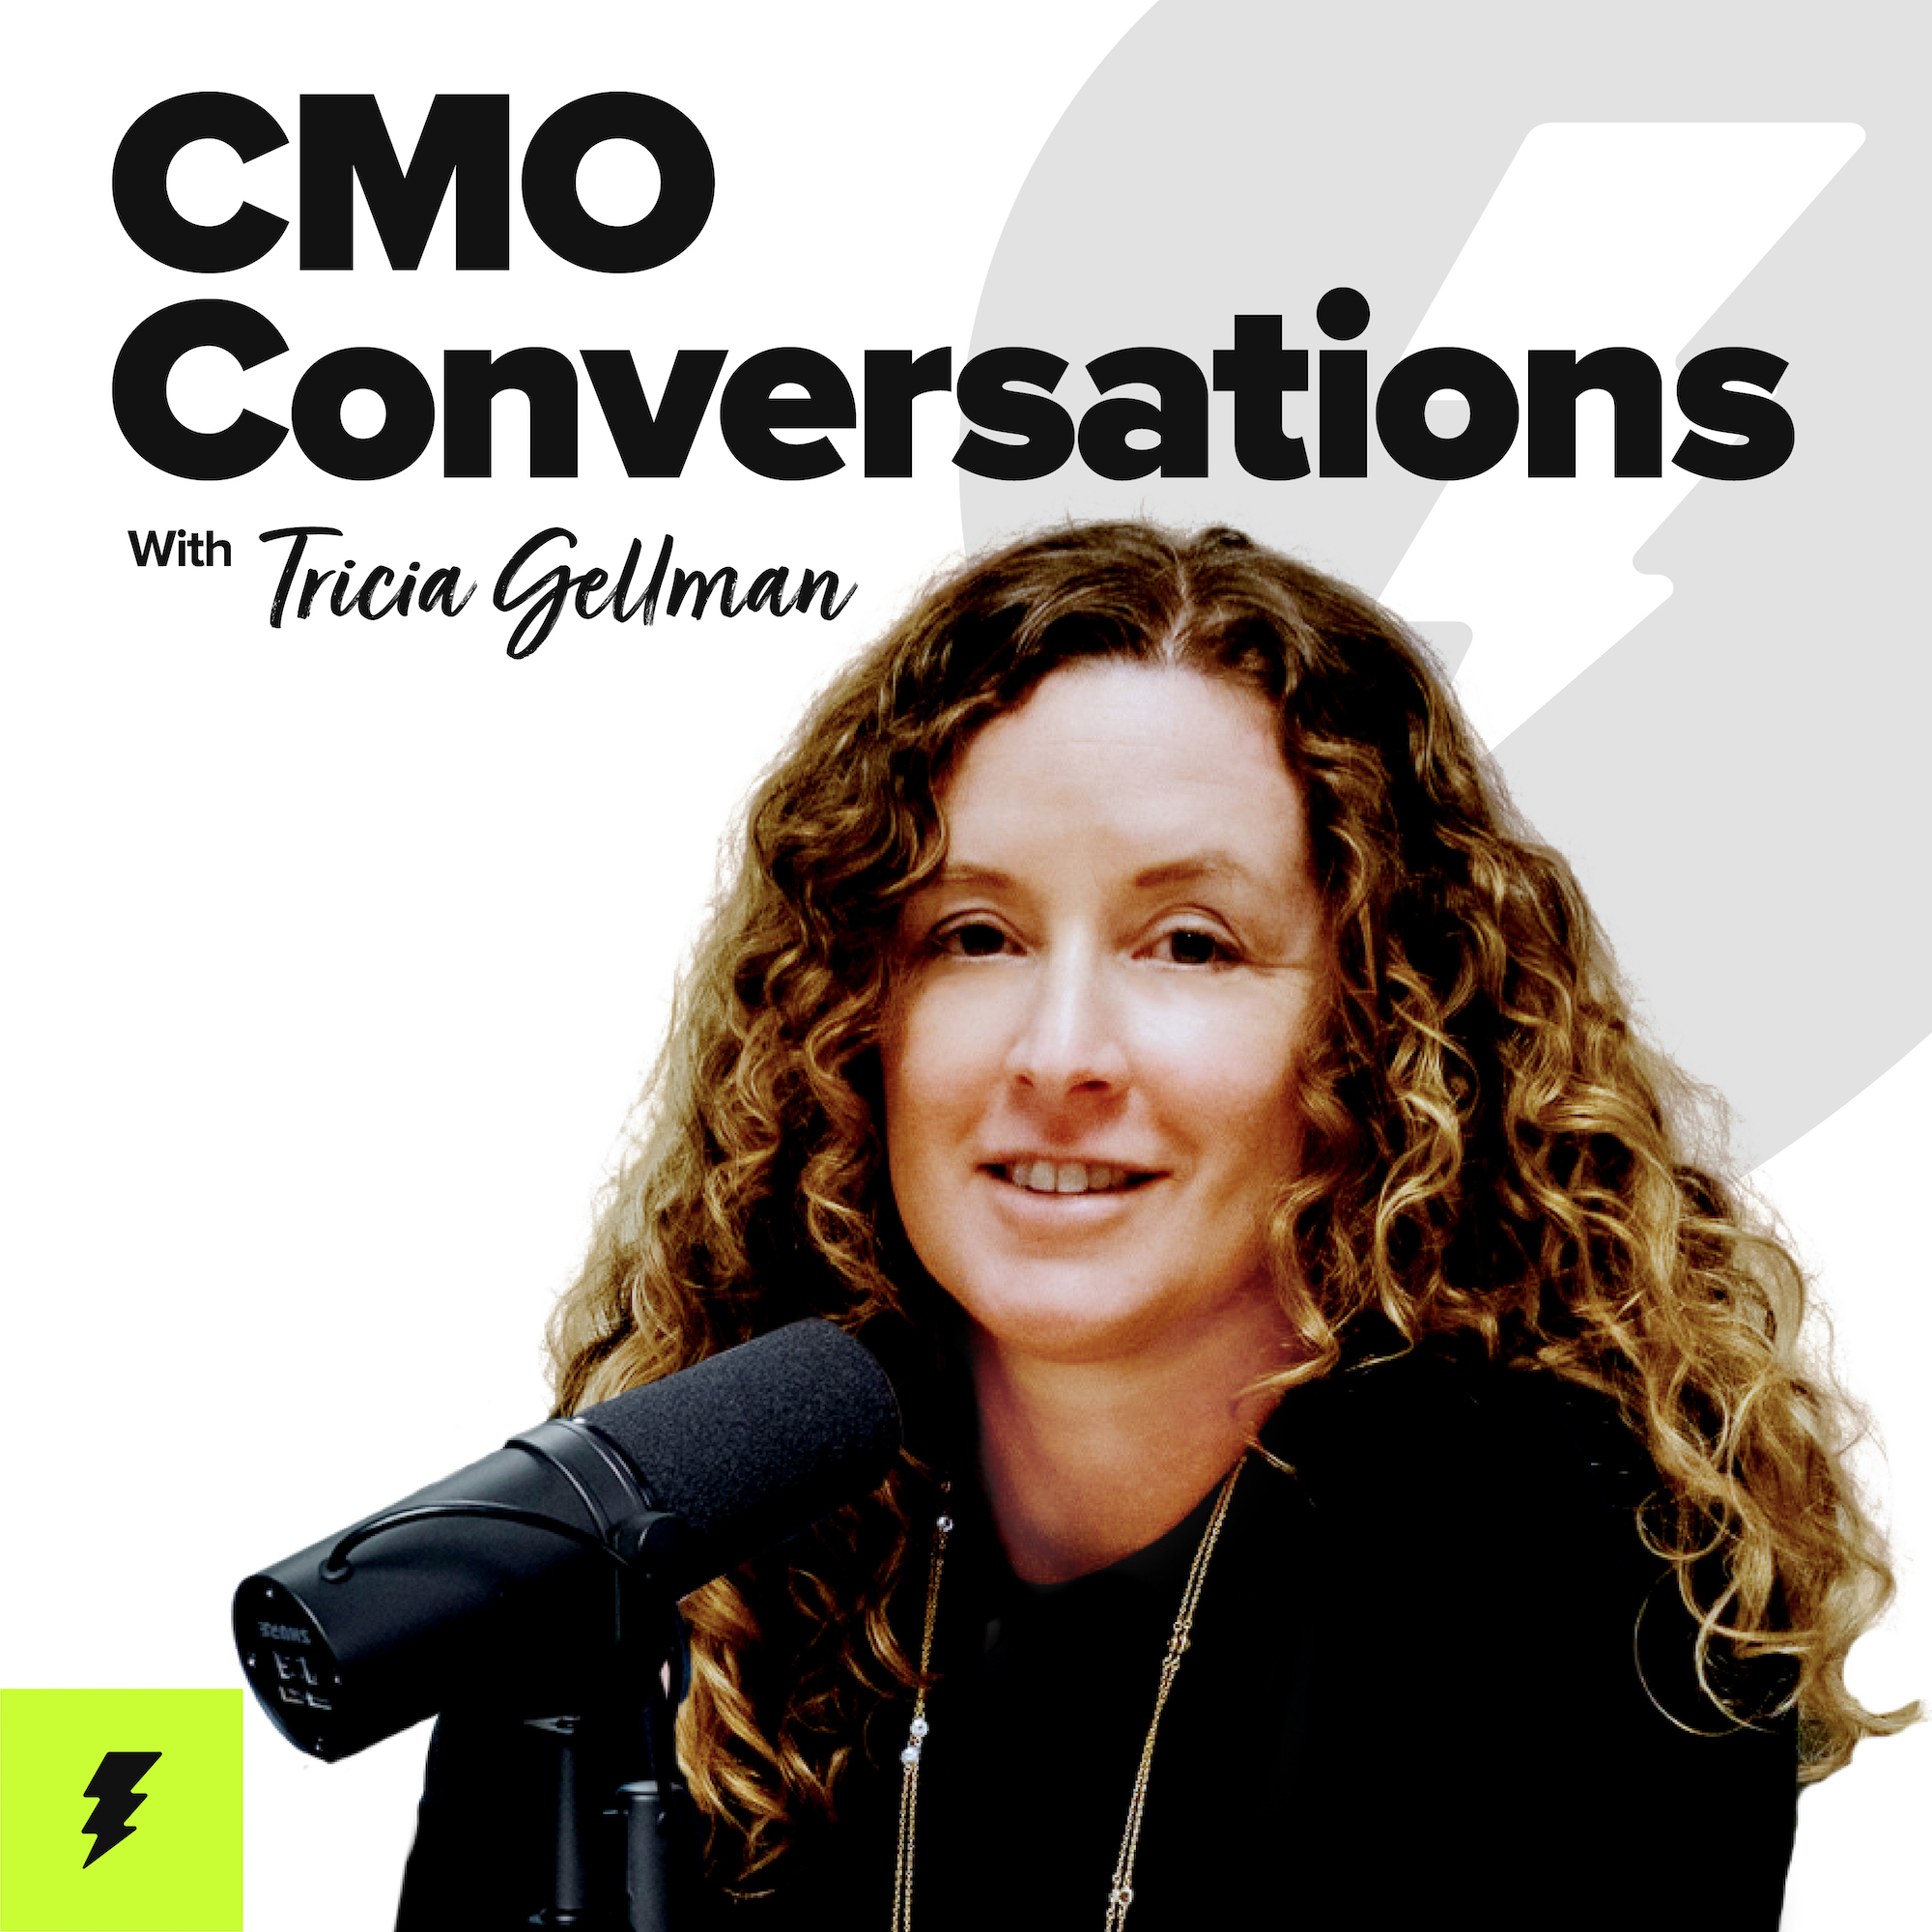 What Marketers Need To Know About Category Creation (With Emergence Capital's Viviana Faga)